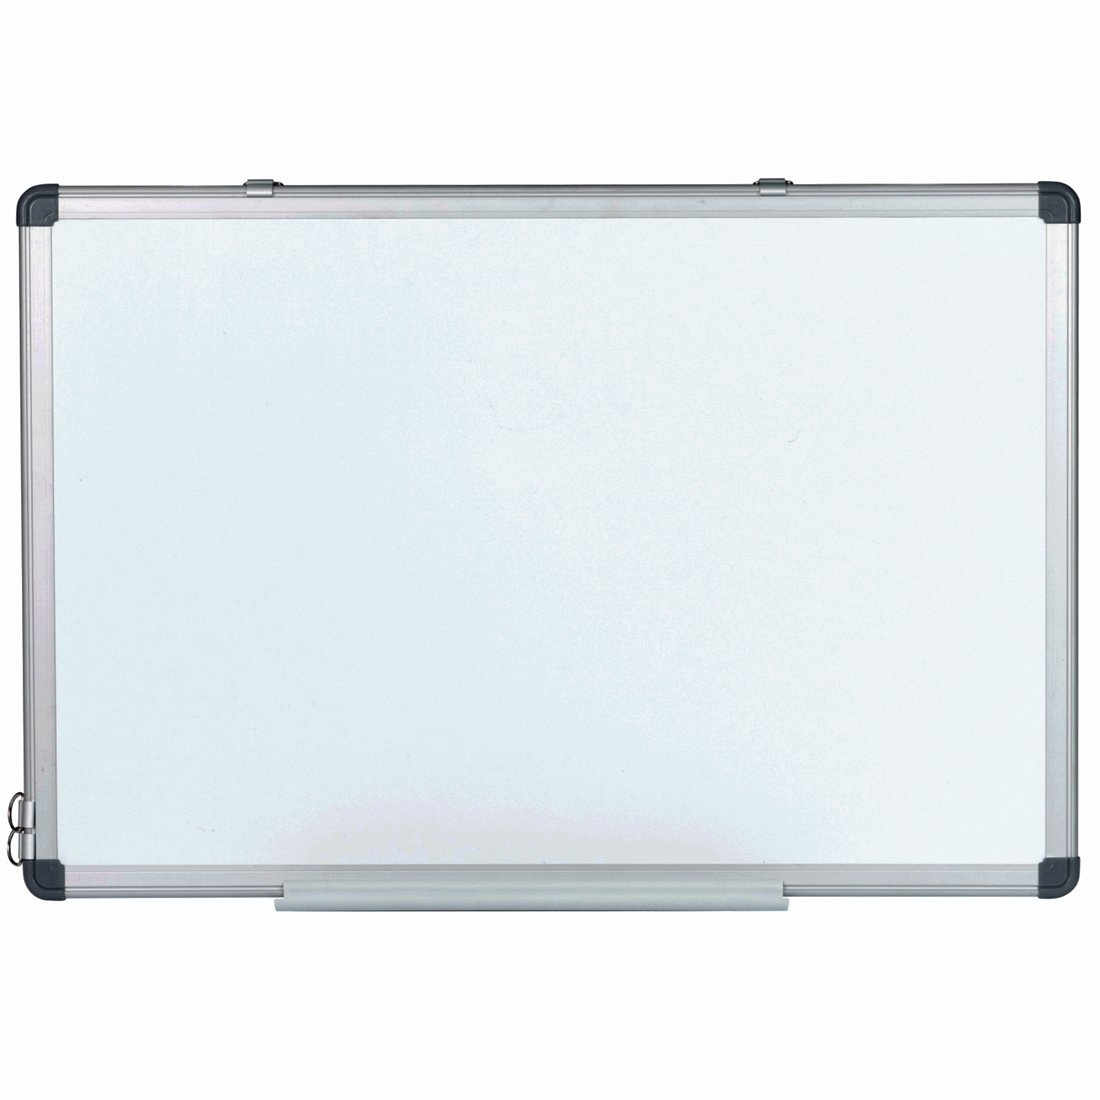 "Amazon.com : GOOD LIFE 24"" x 16"" Horizontal & vertical compatible Small Dry  Erase Board Magnetic Markers Aluminum Frame Whiteboard Set for Office and  ..."